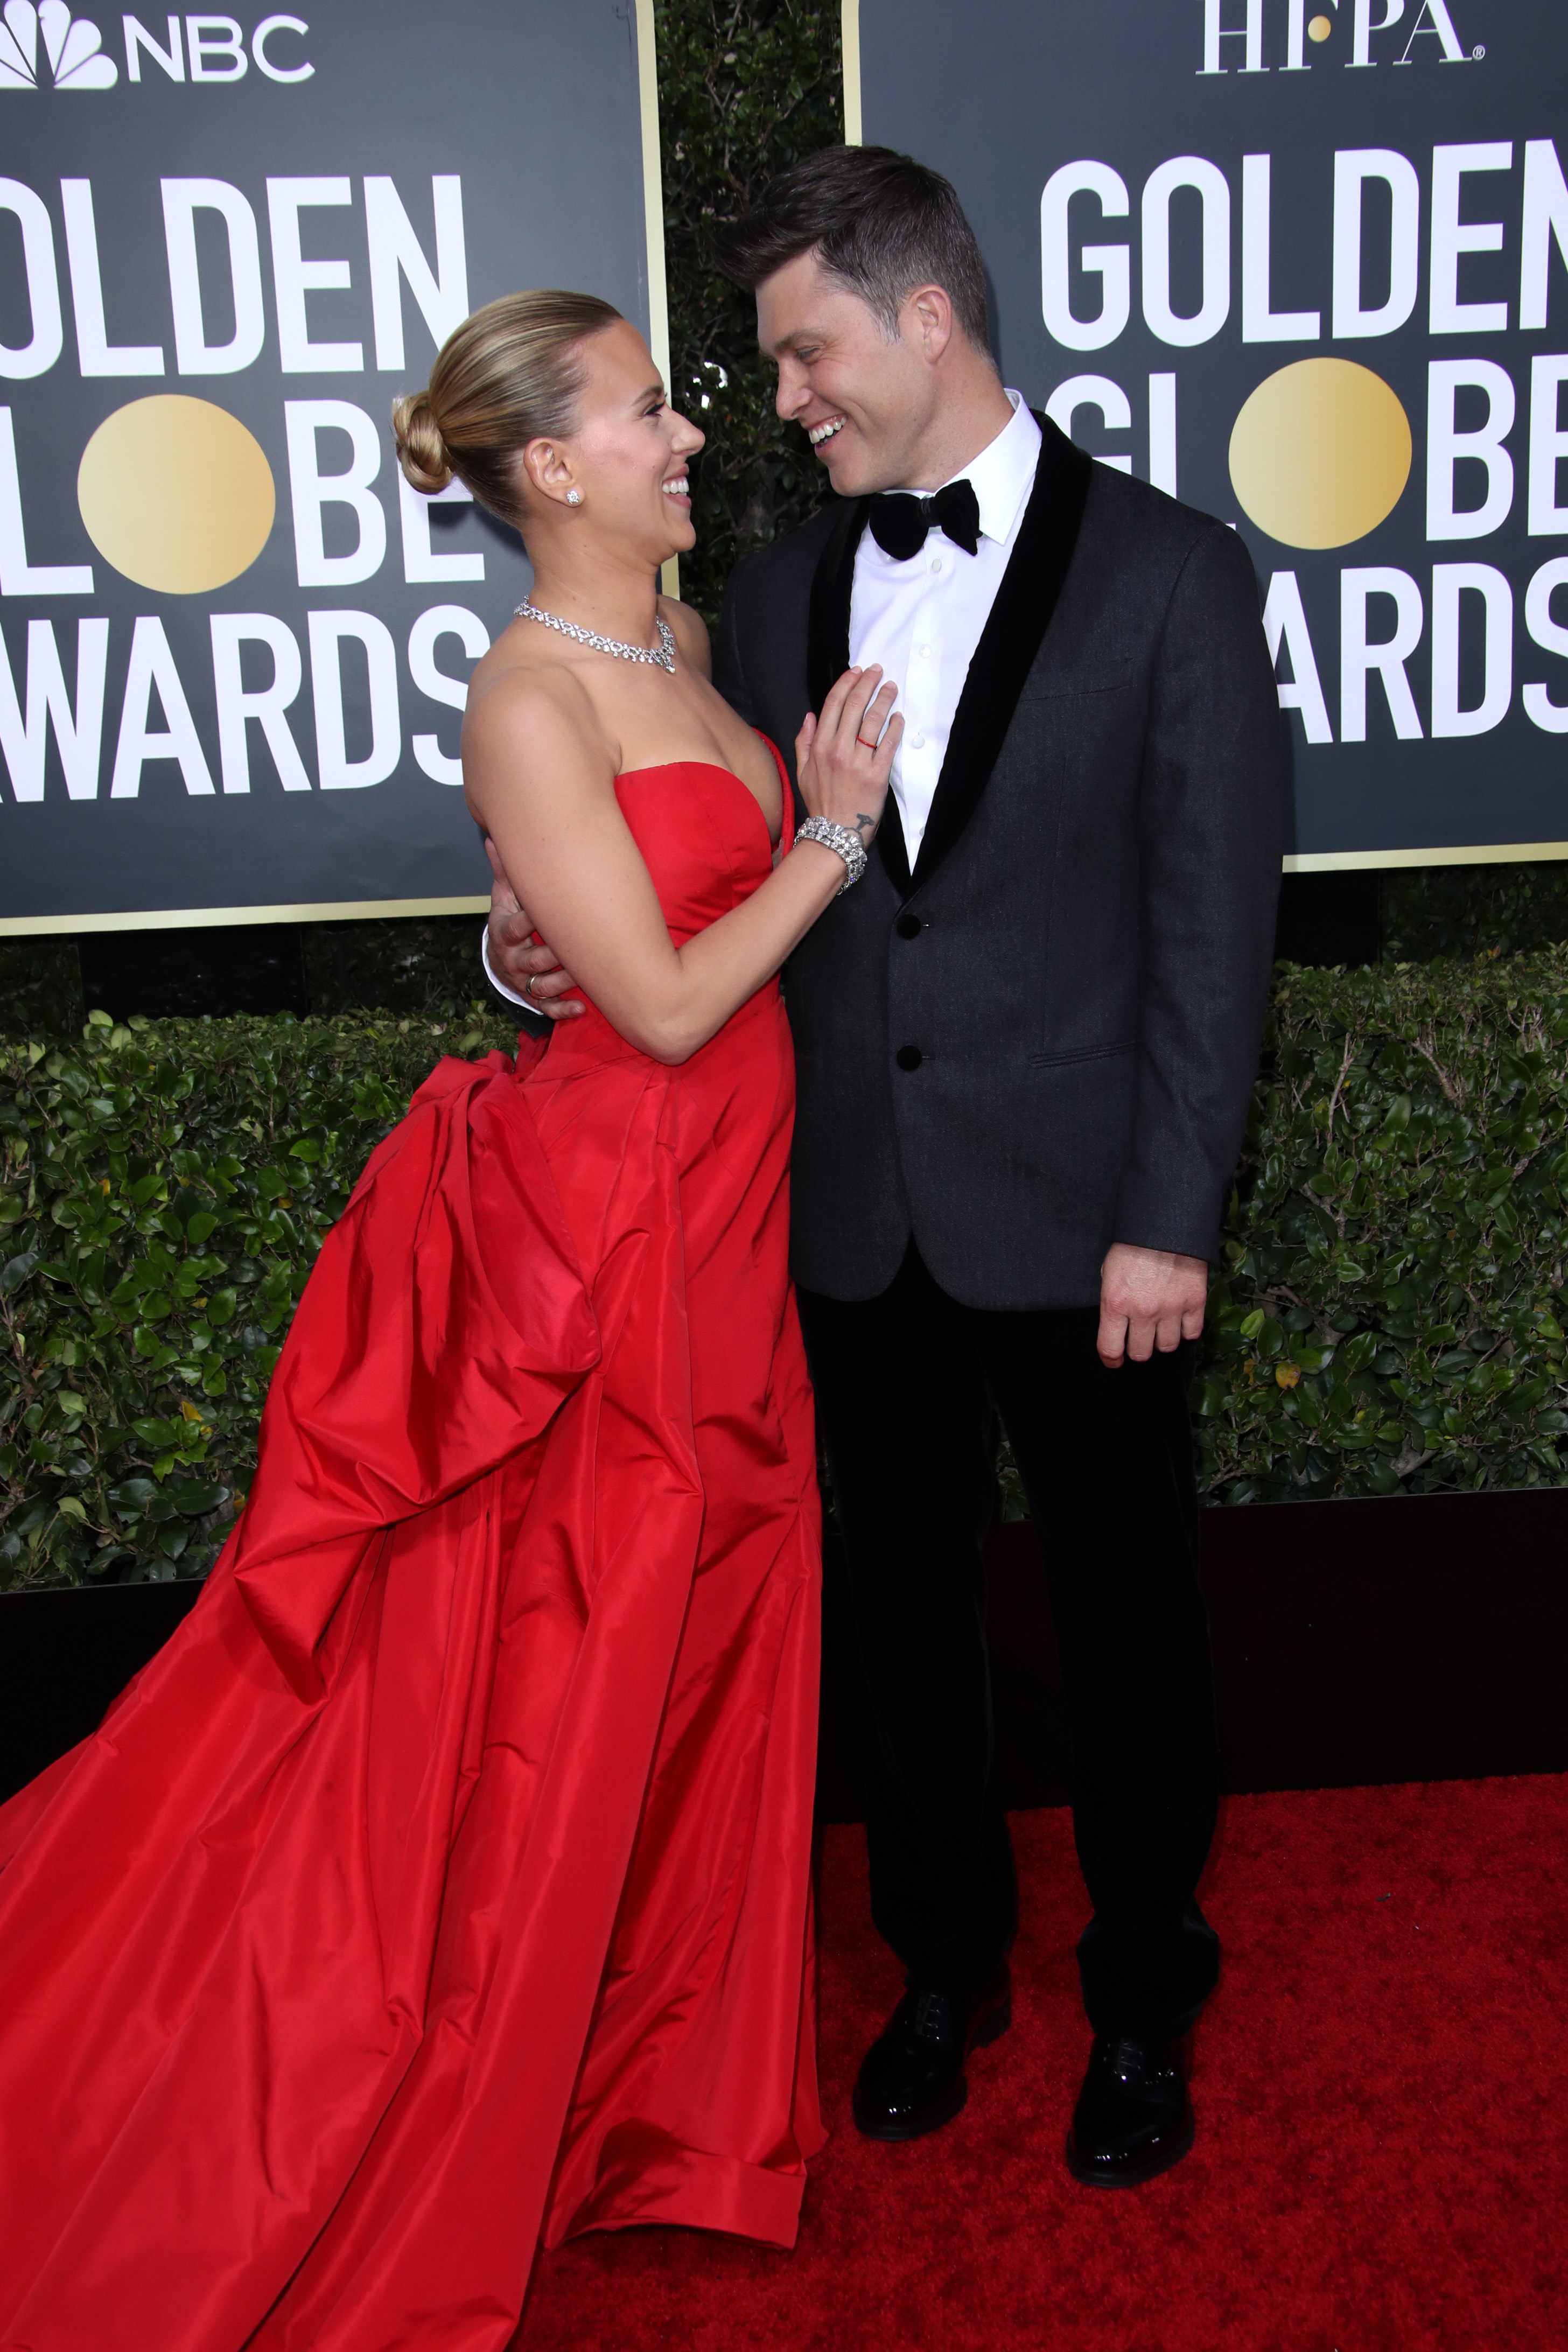 Scarlett Johansson and Colin Jost77th Annual Golden Globe Awards, Arrivals, Los Angeles, USA - 05 Jan 2020